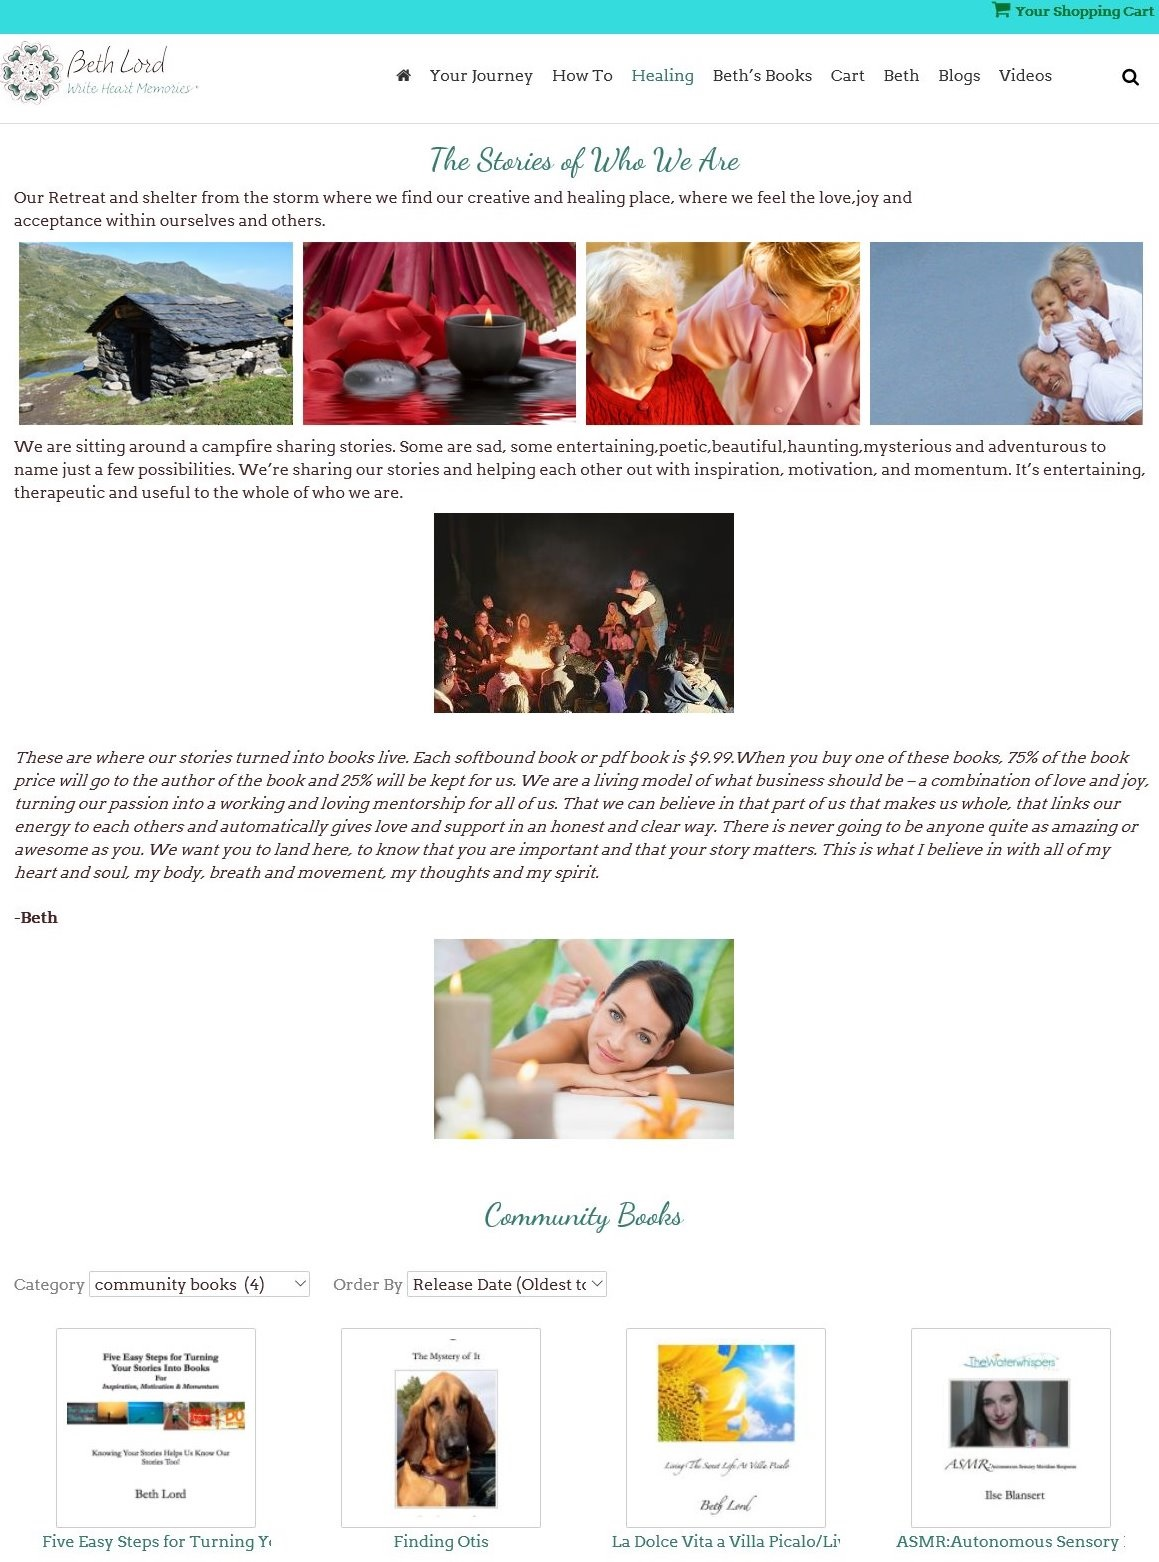 One on one help with sharing your story, web design, development, social media